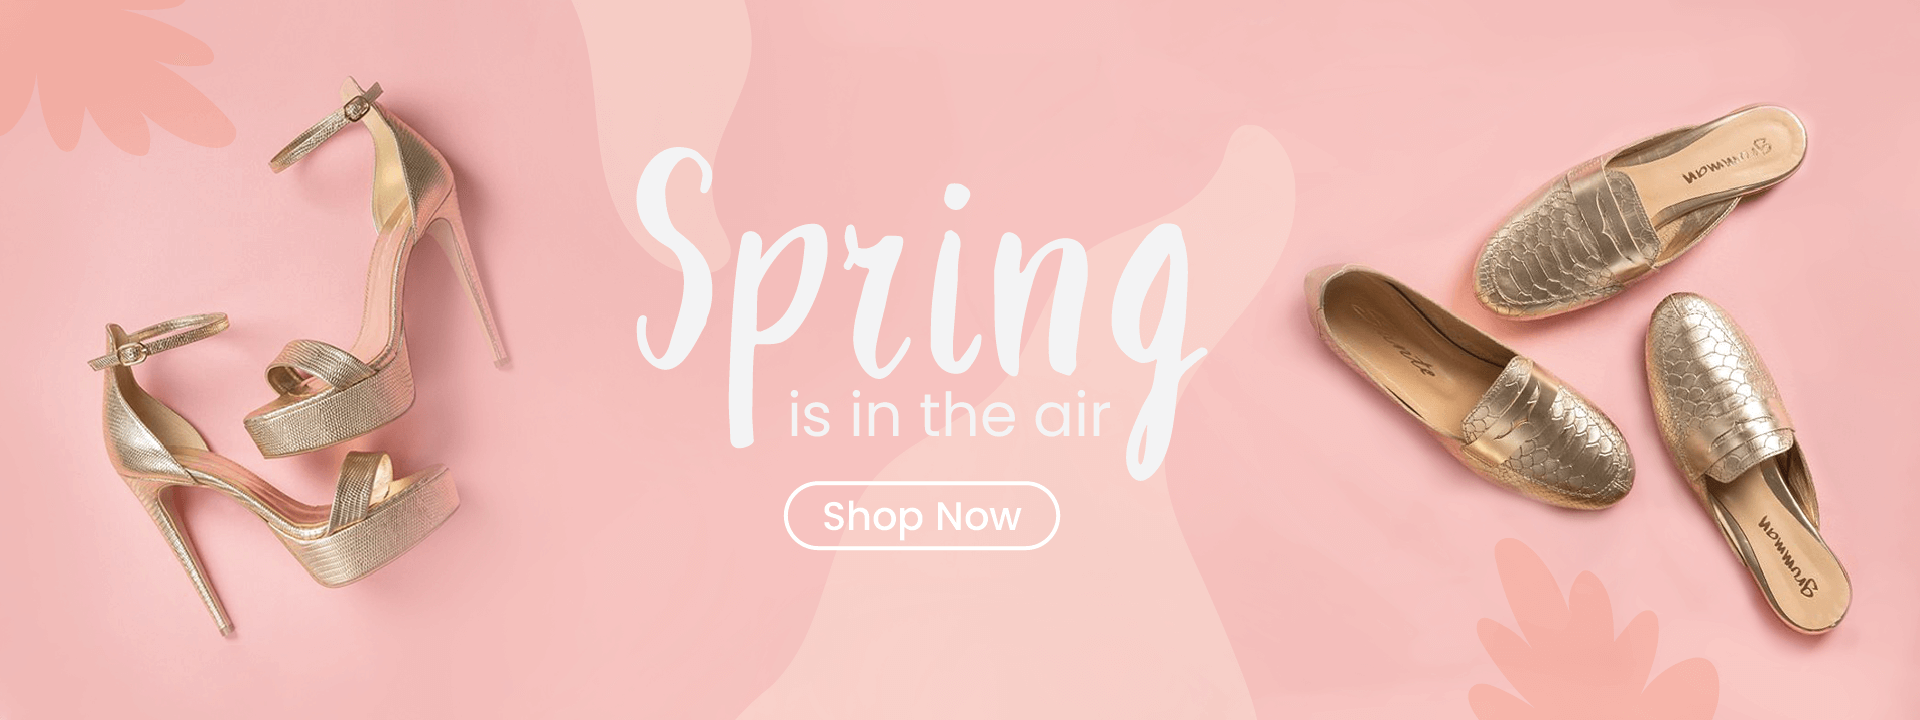 Spring New is Products